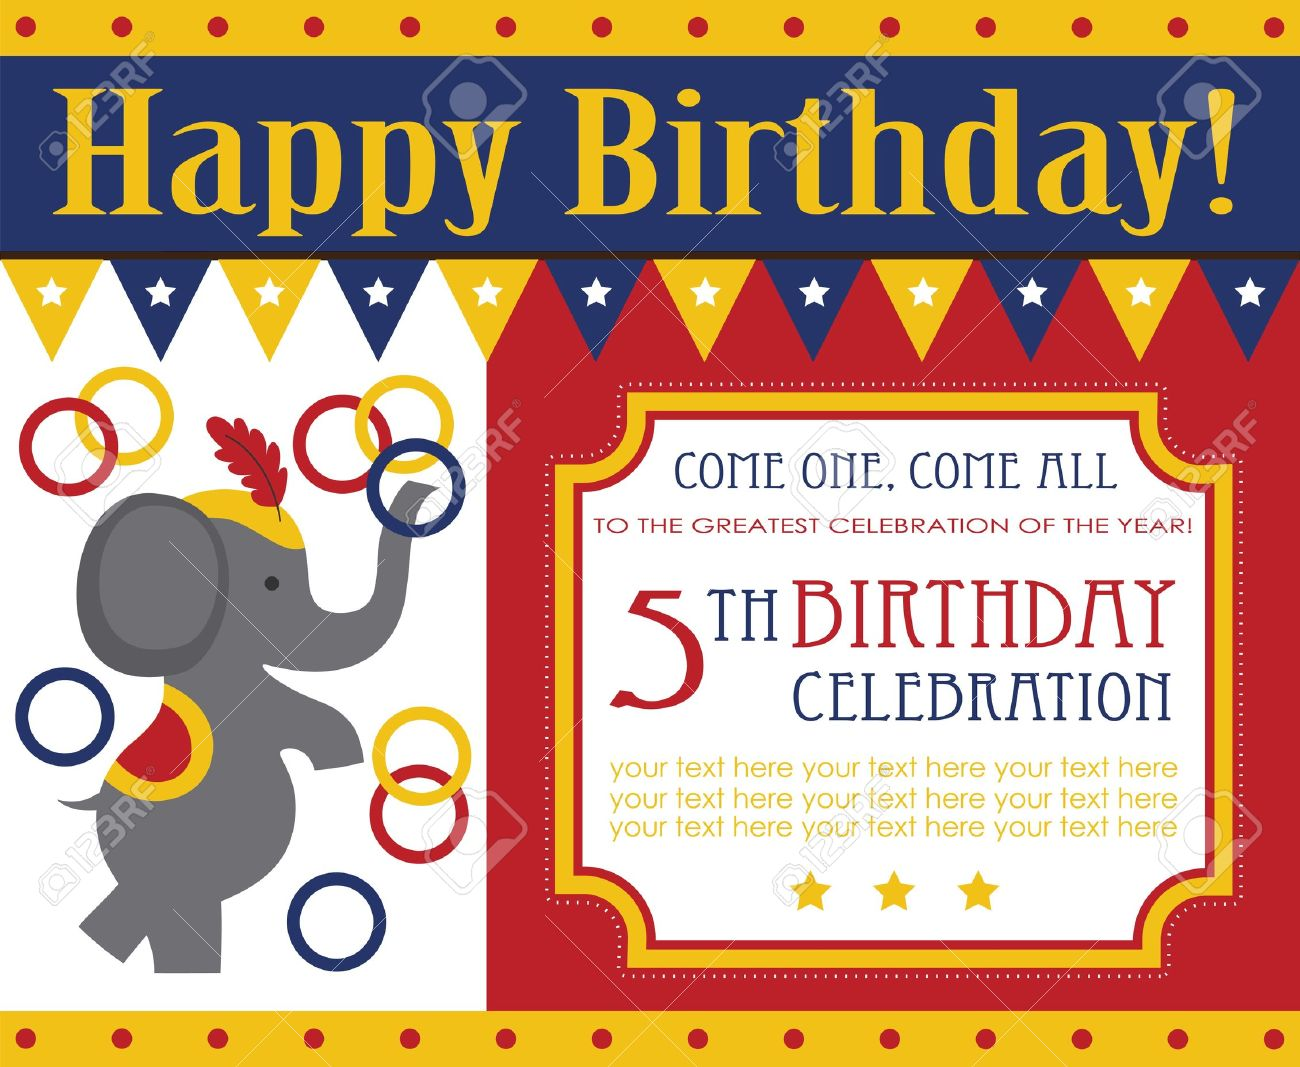 Kid Birthday Invitation Card Design Vector Illustration Royalty – Birthday Invitations Cards Designs